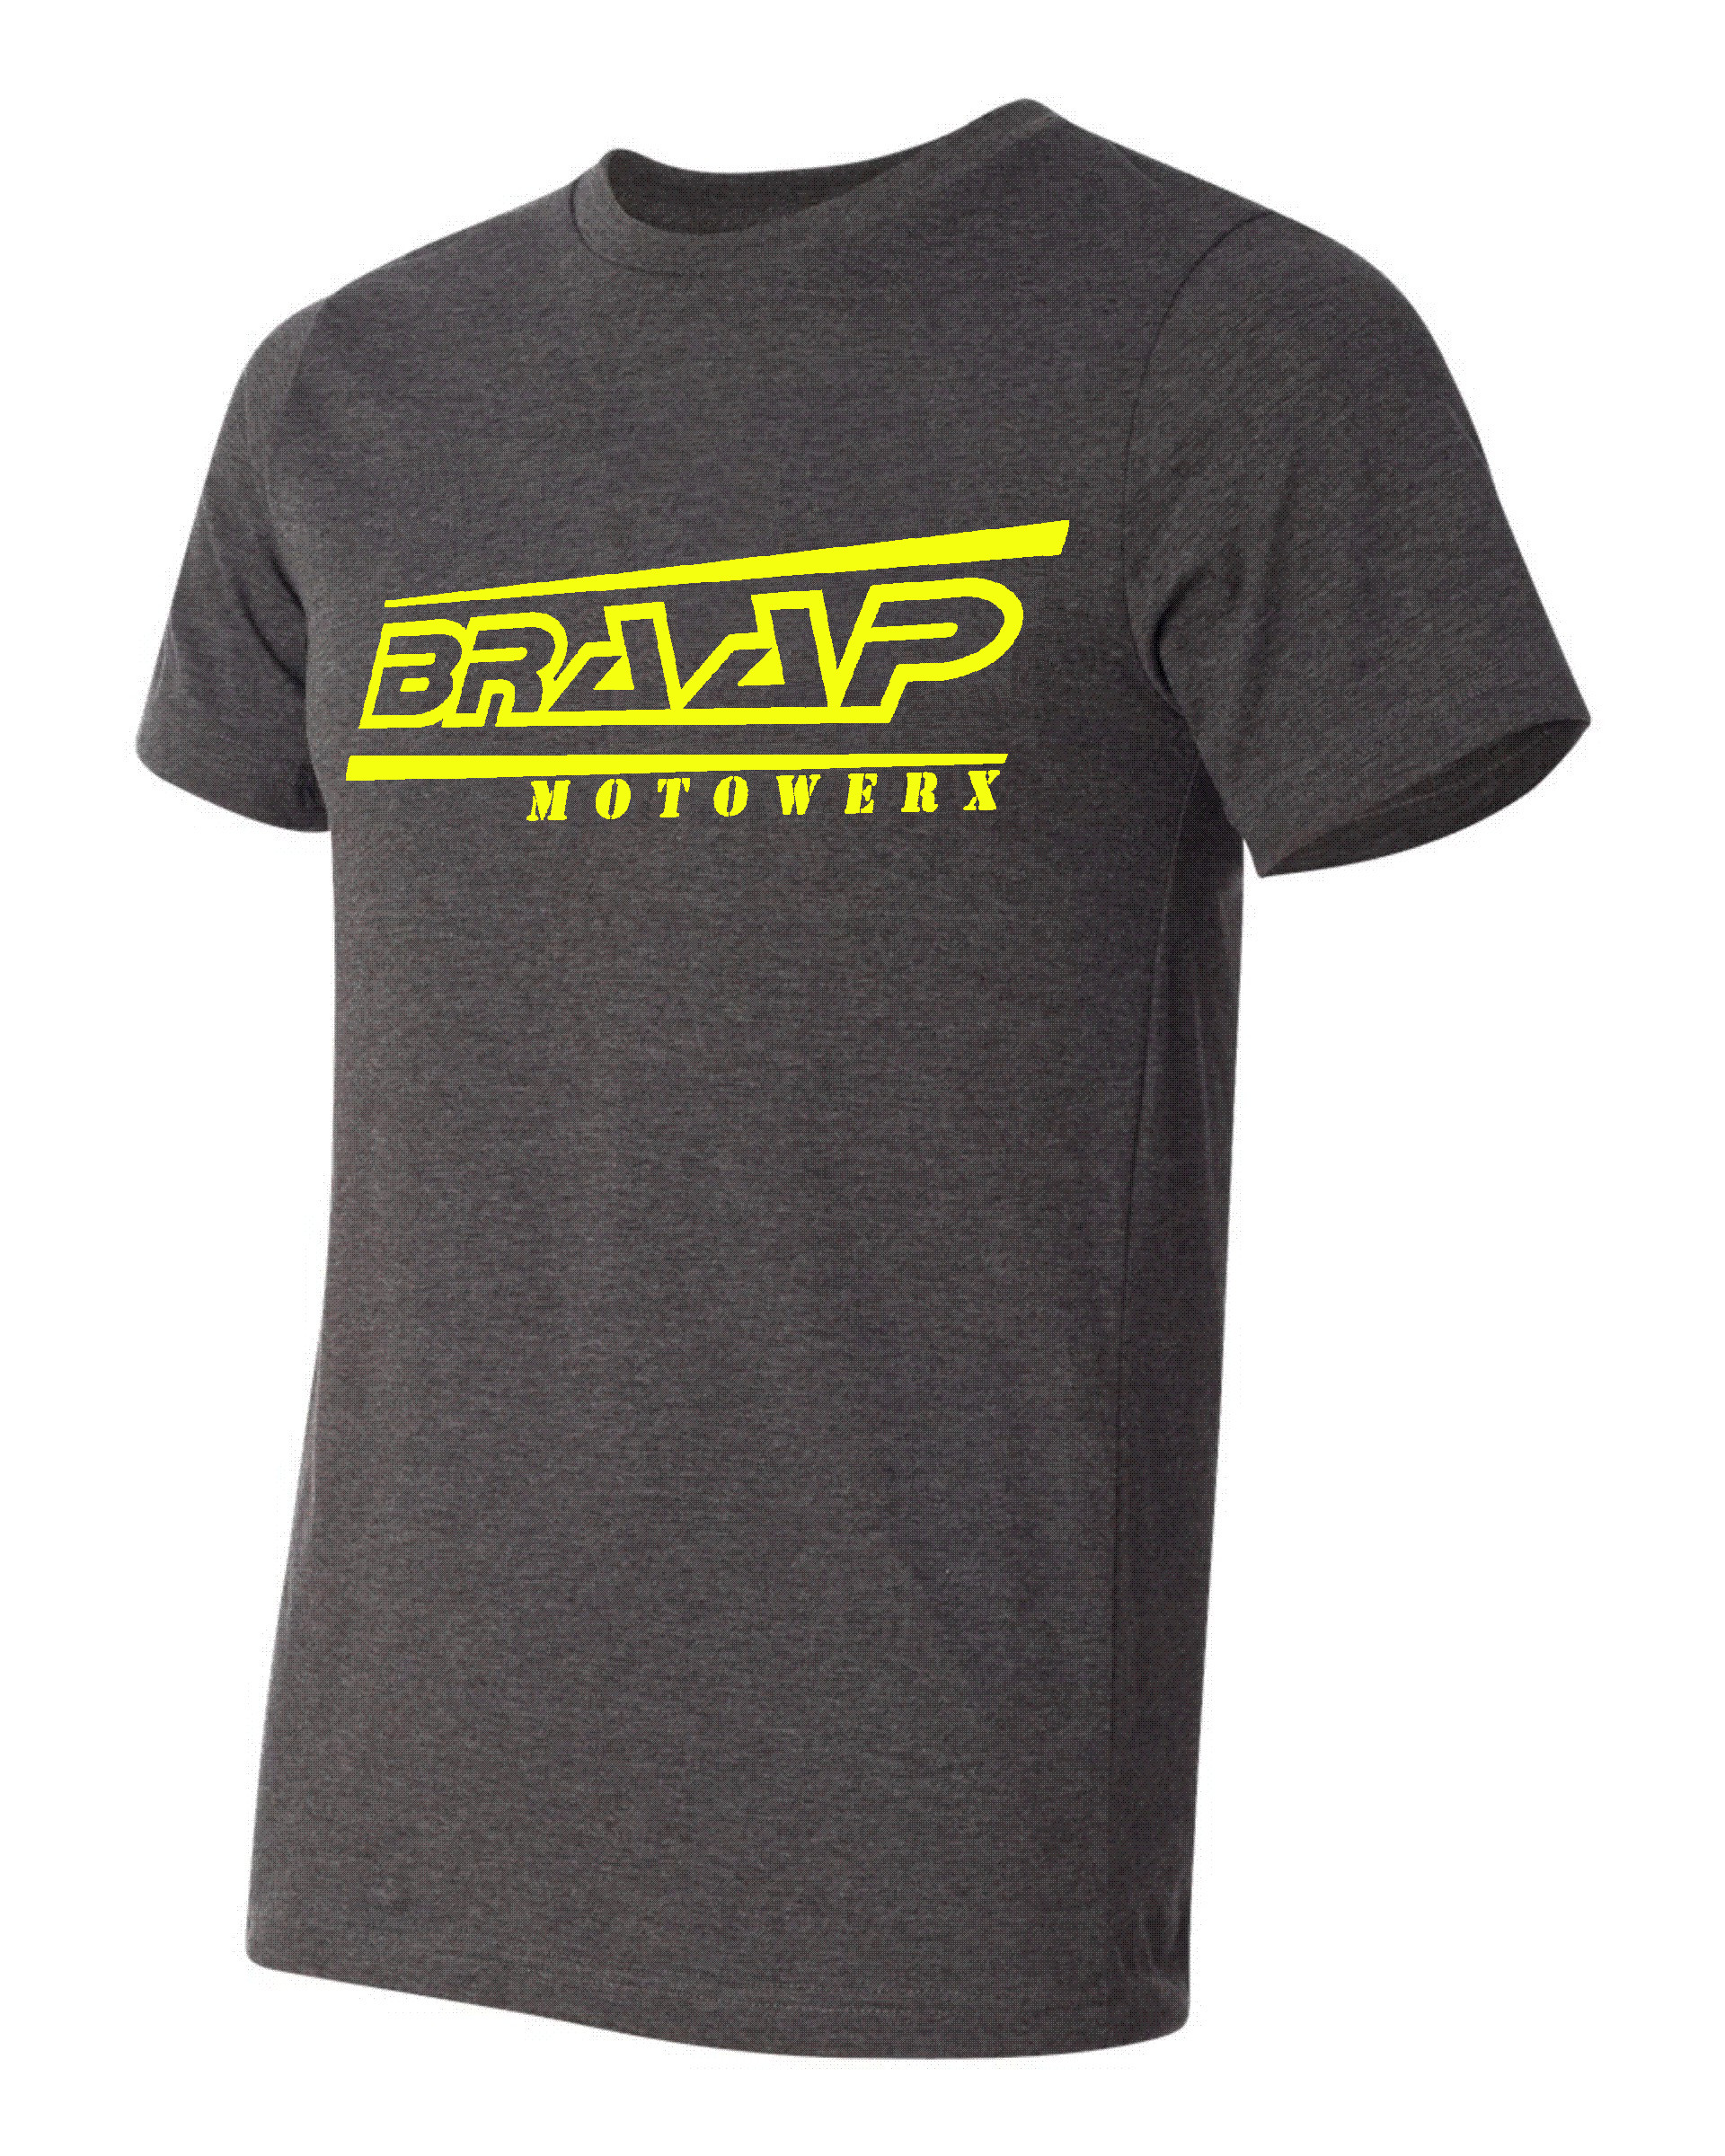 Braap Motowerx T-Shirt